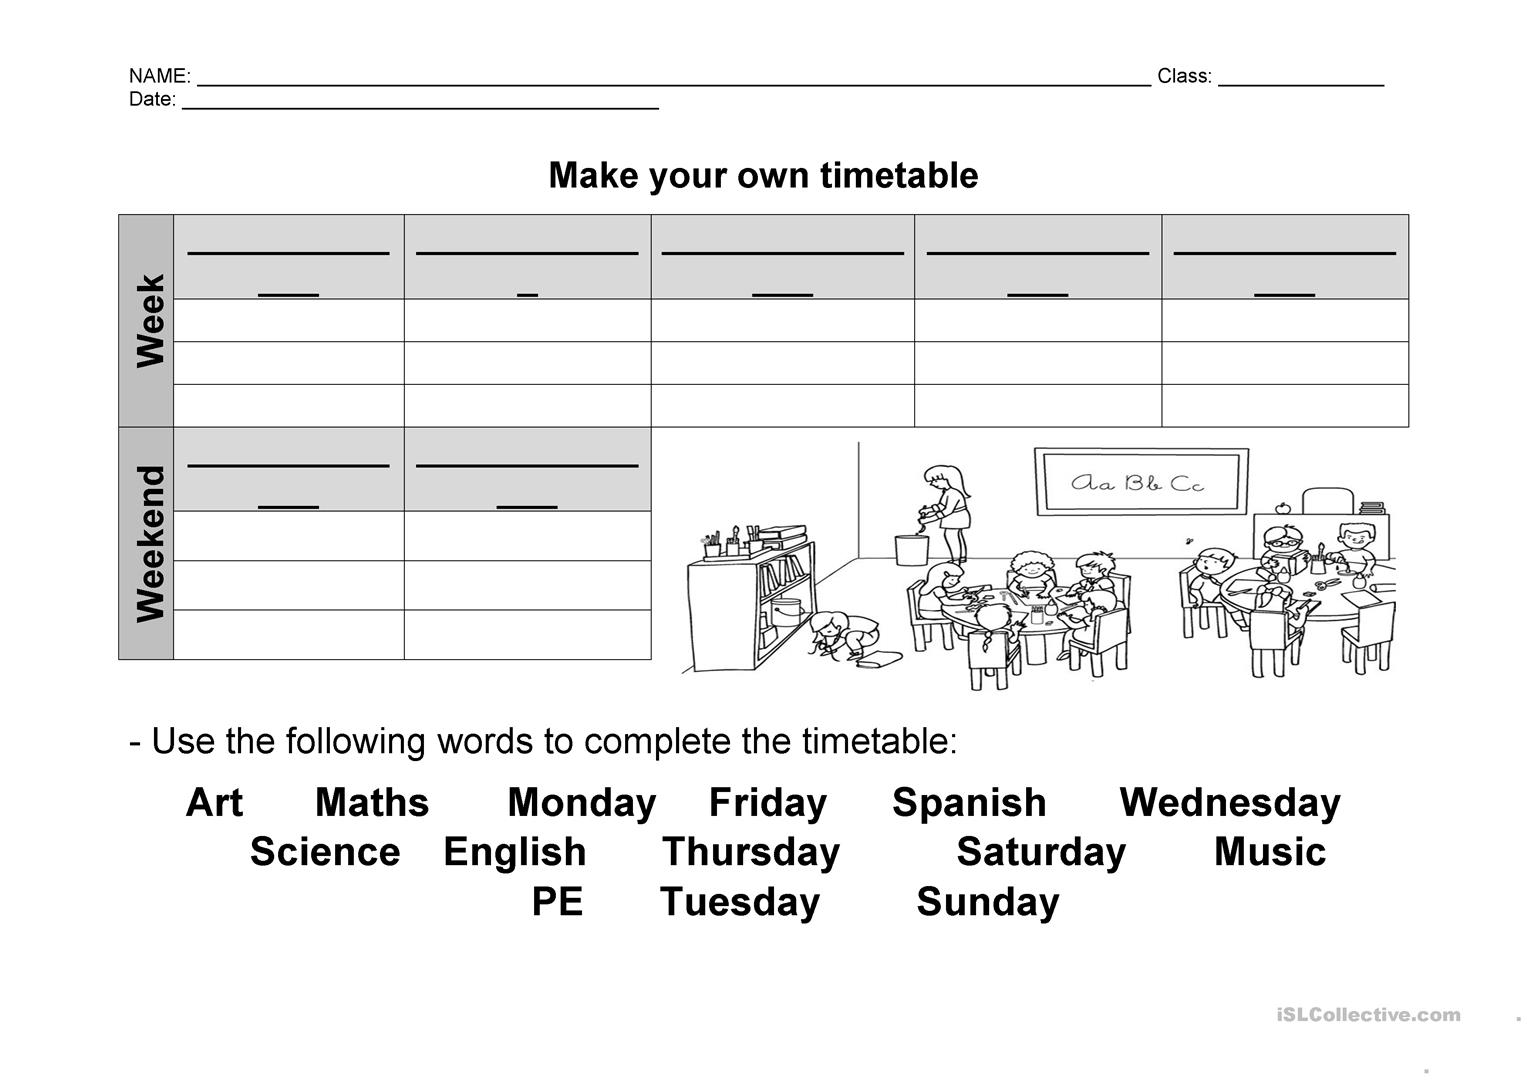 Make Your Own Timetable